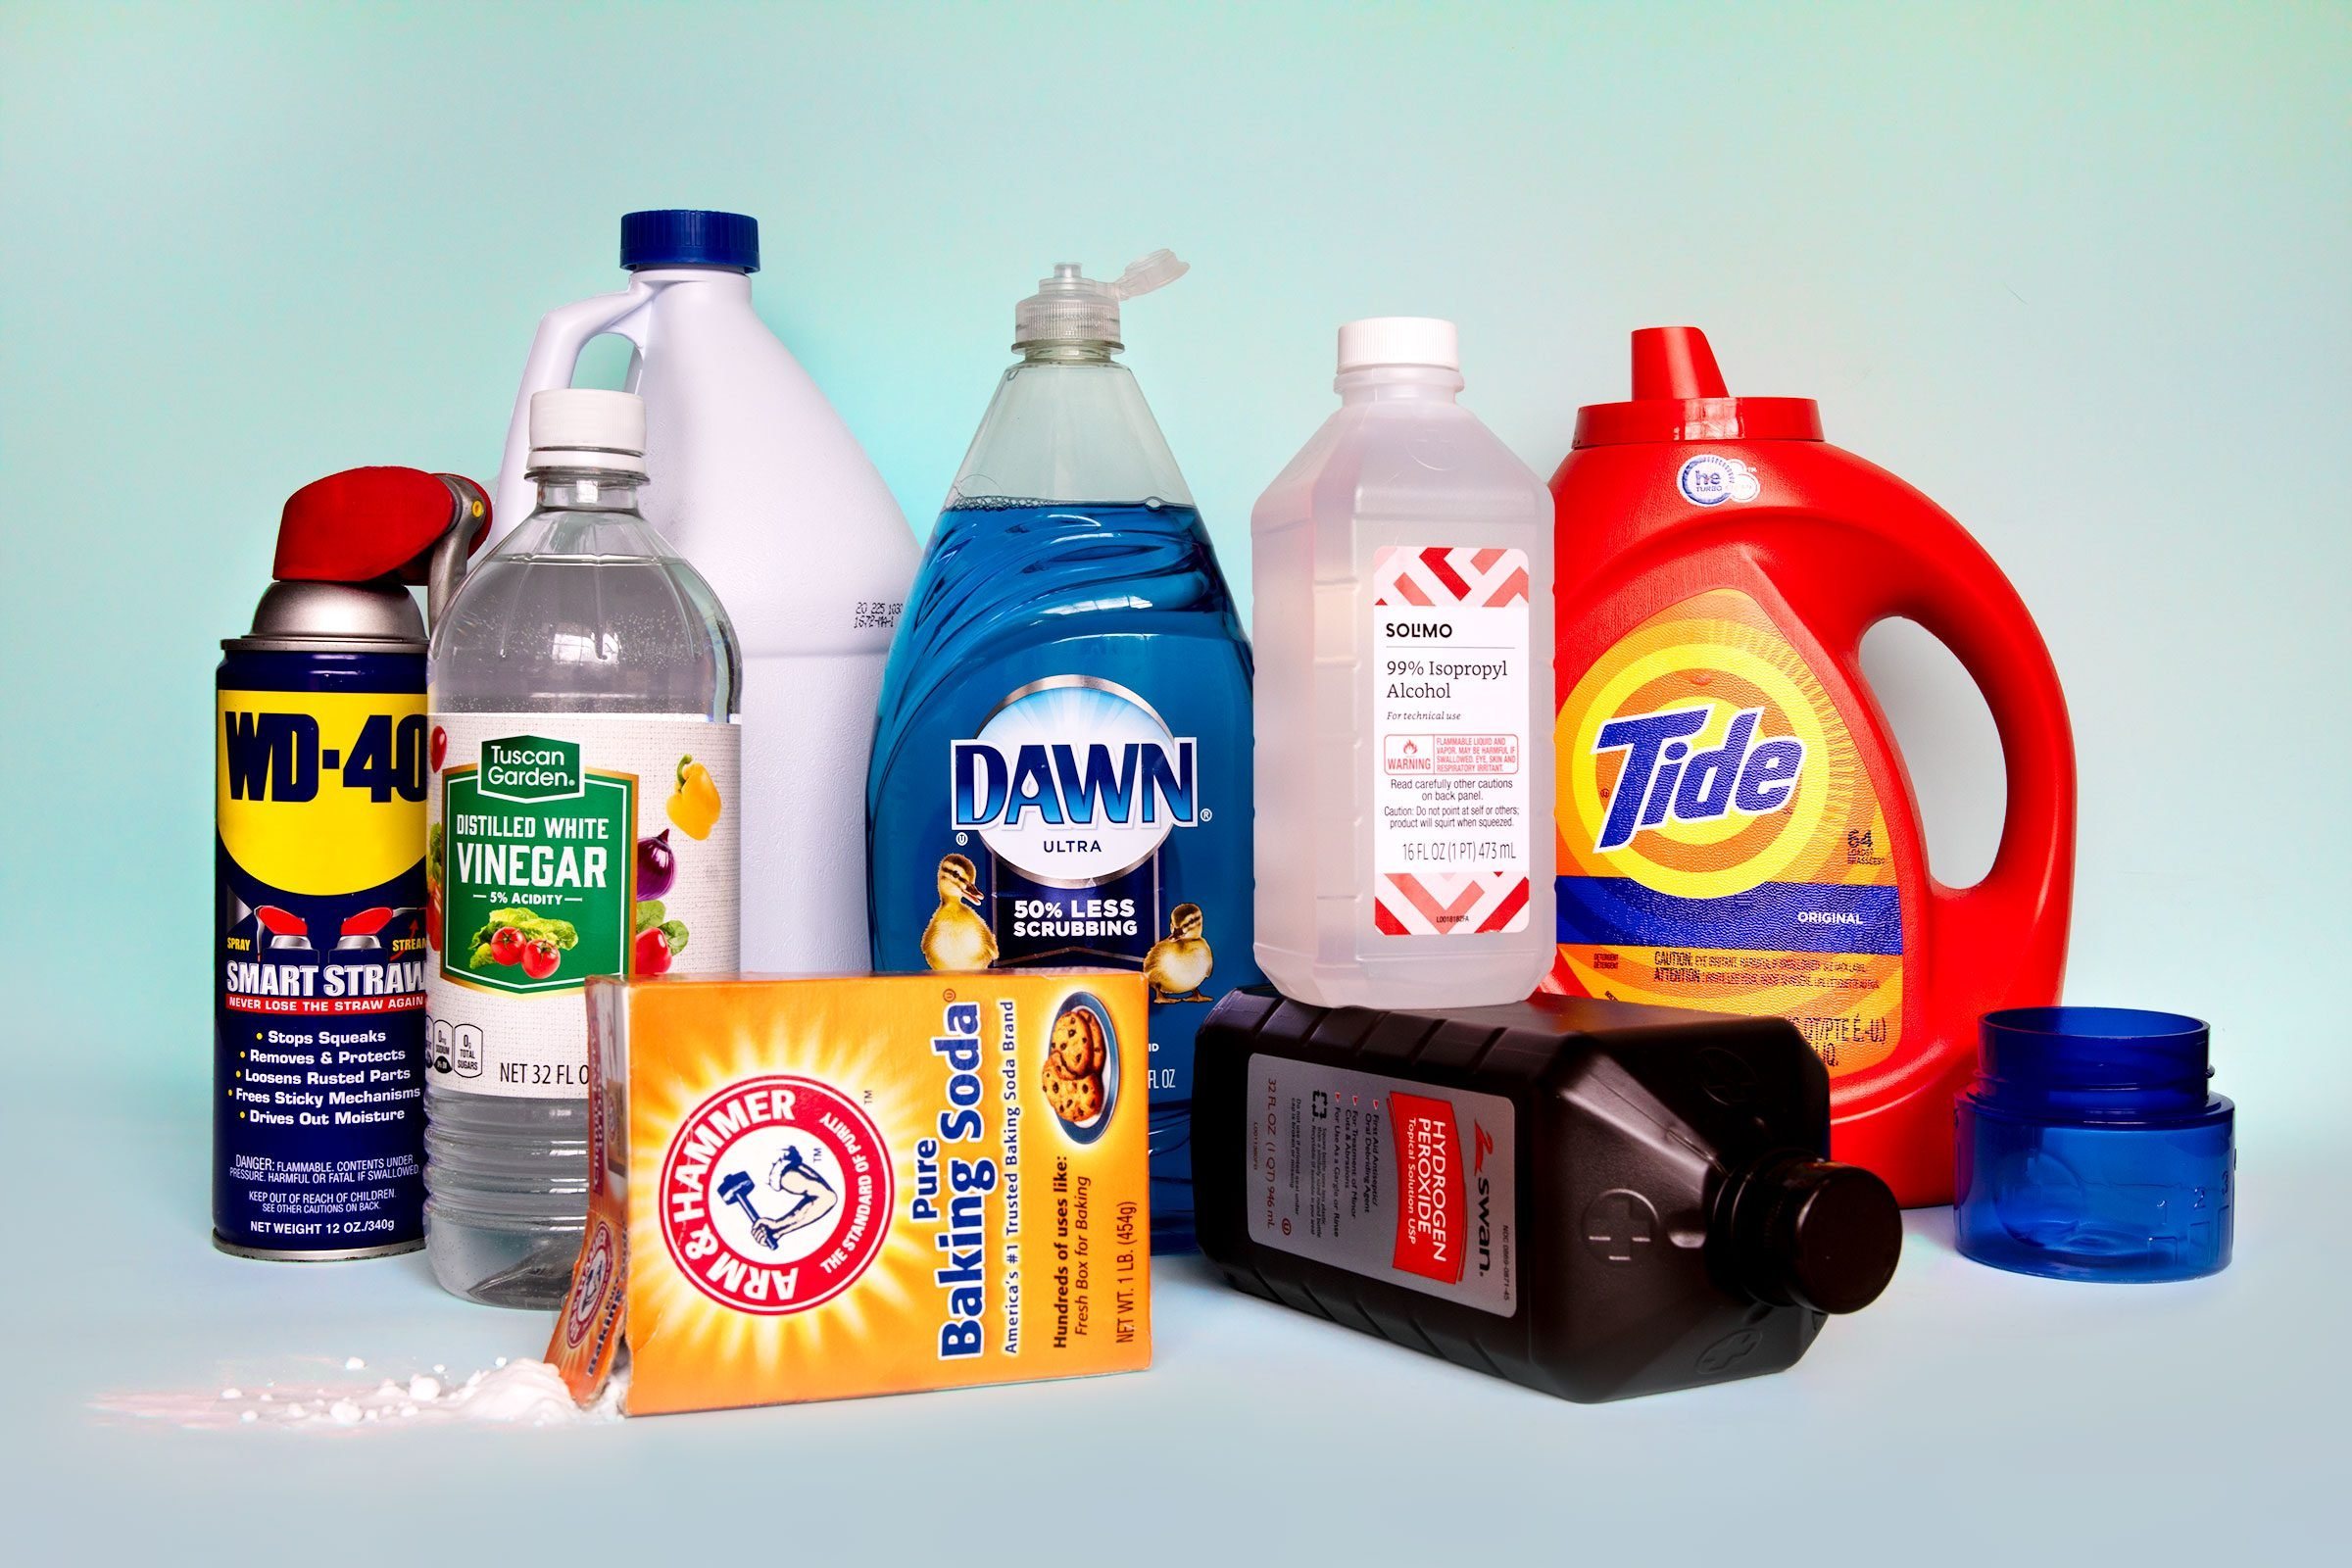 a collection of cleaning products used to clean every type of stain